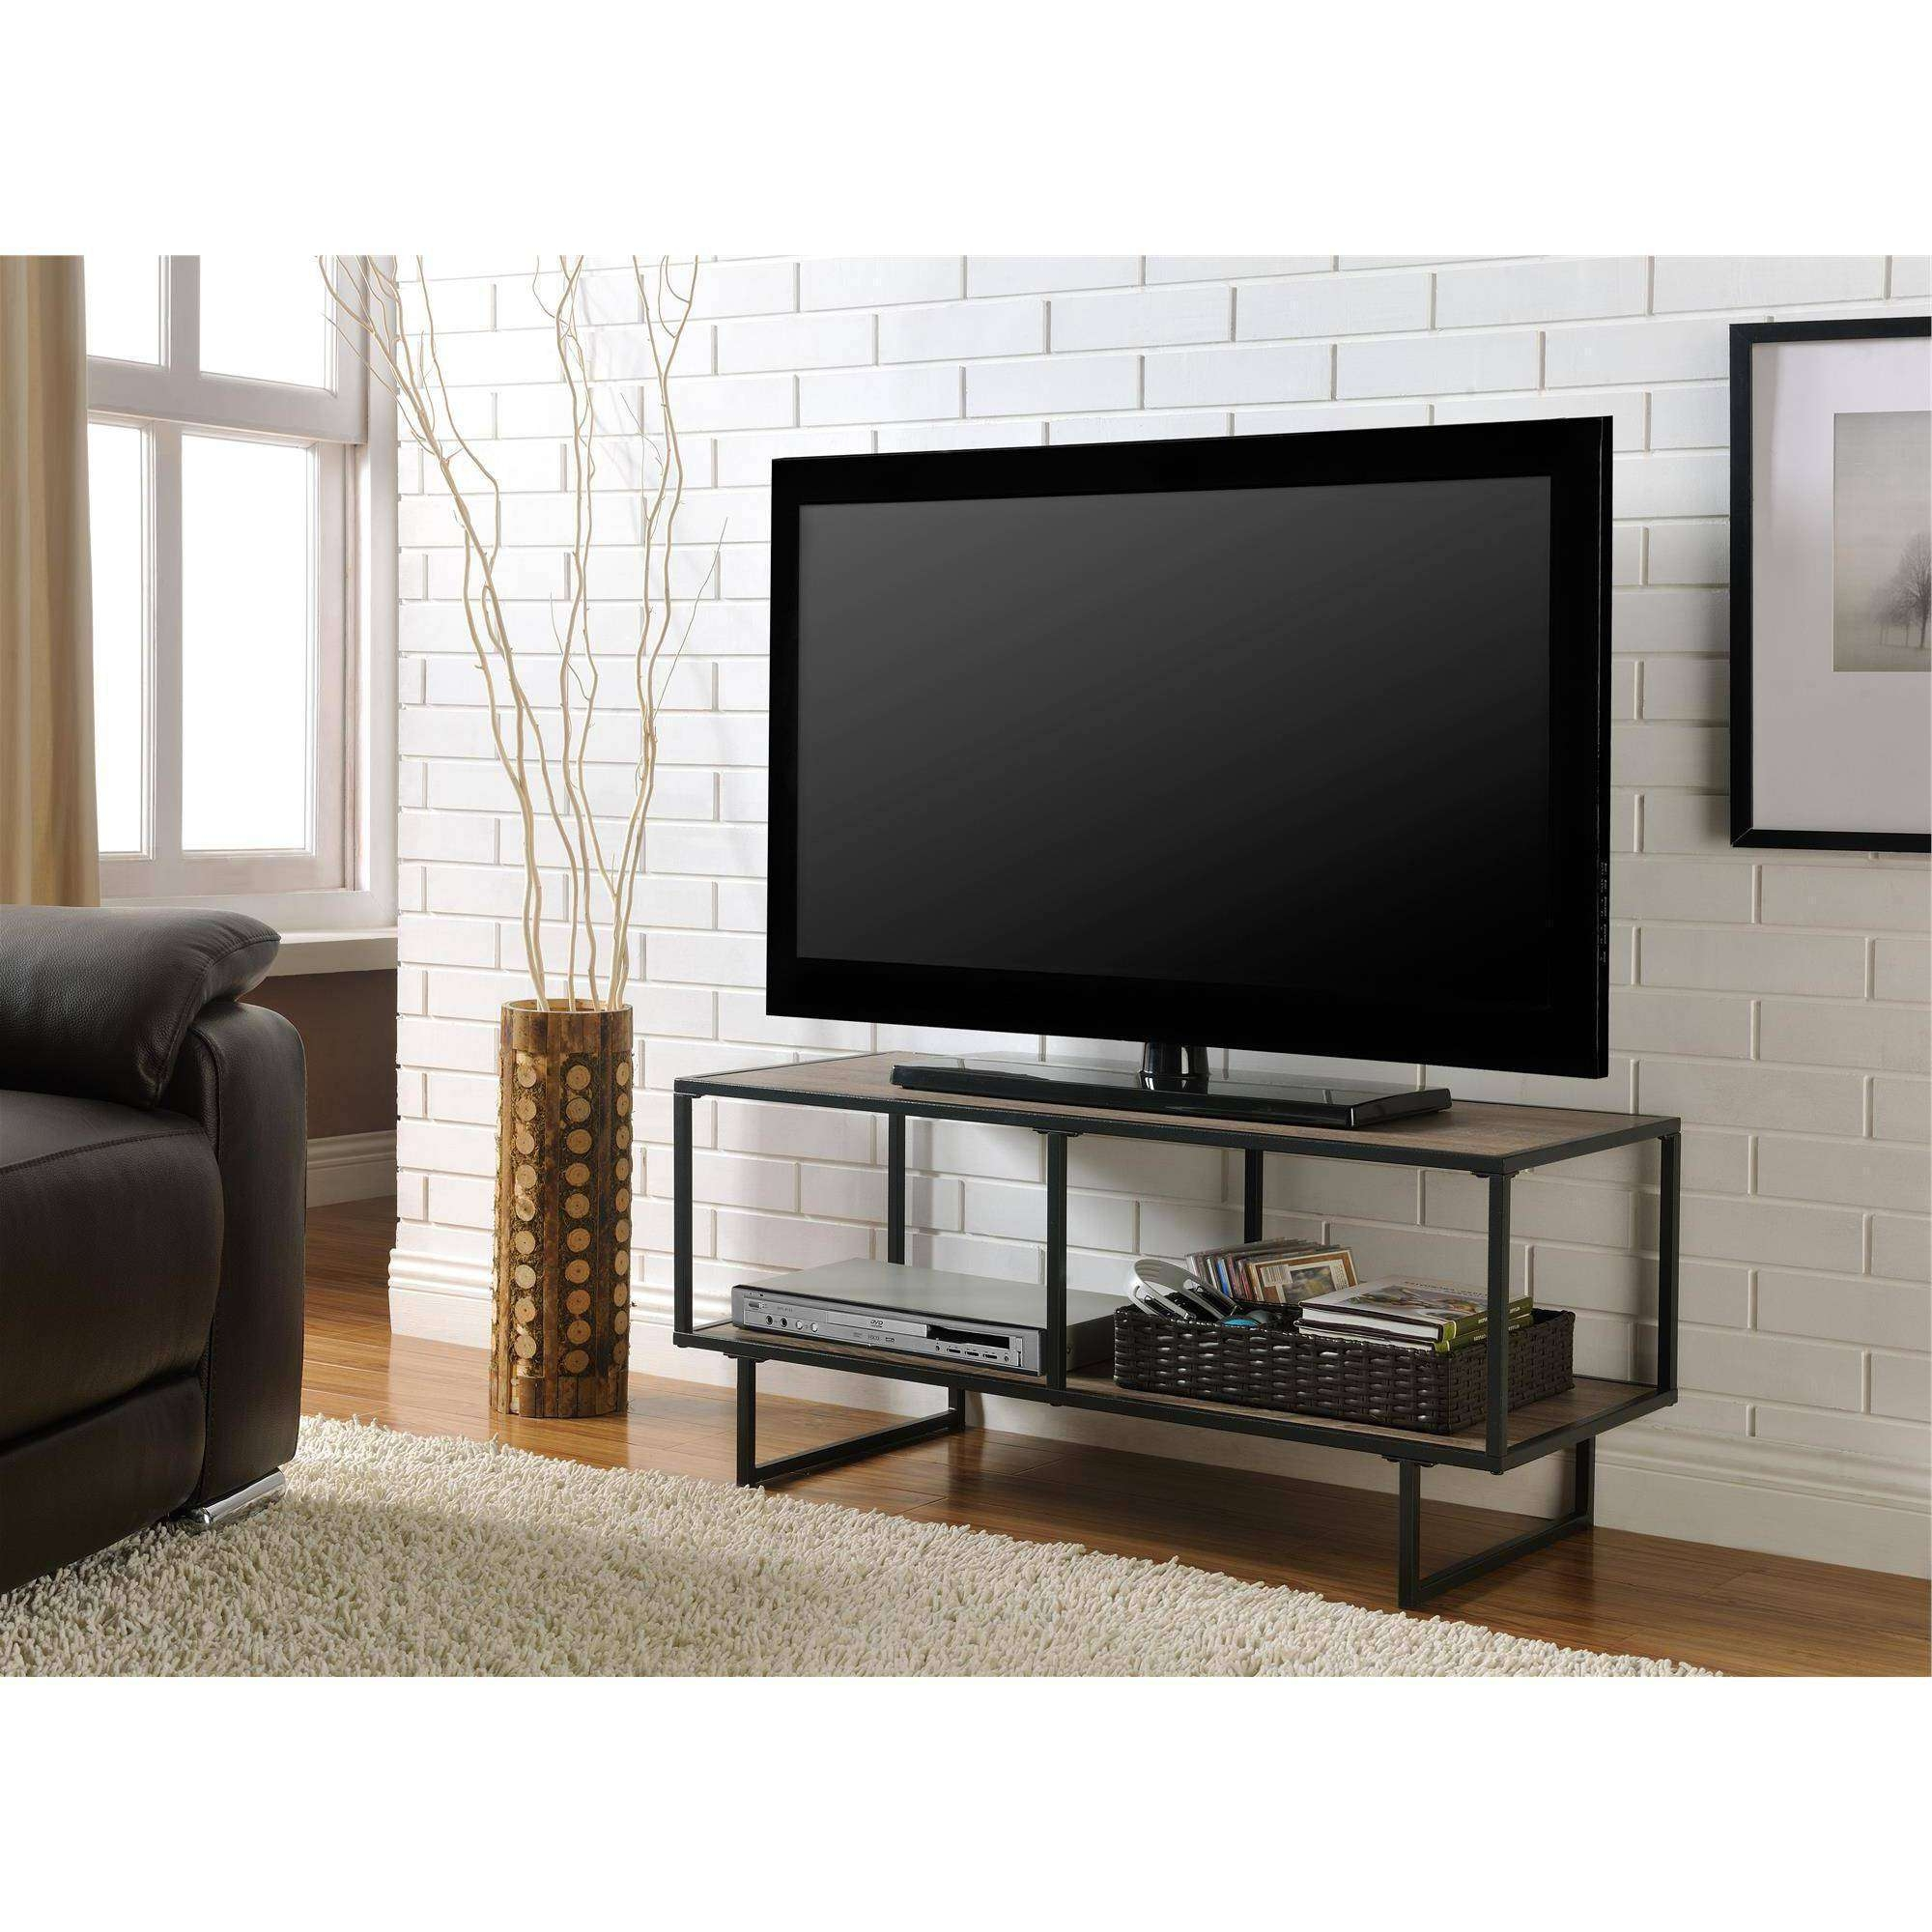 Altra Furniture Emmett 1 Shelf Tv Stand Coffee Table In Sonoma Oak With Regard To Tv Stands Coffee Table Sets (View 13 of 15)